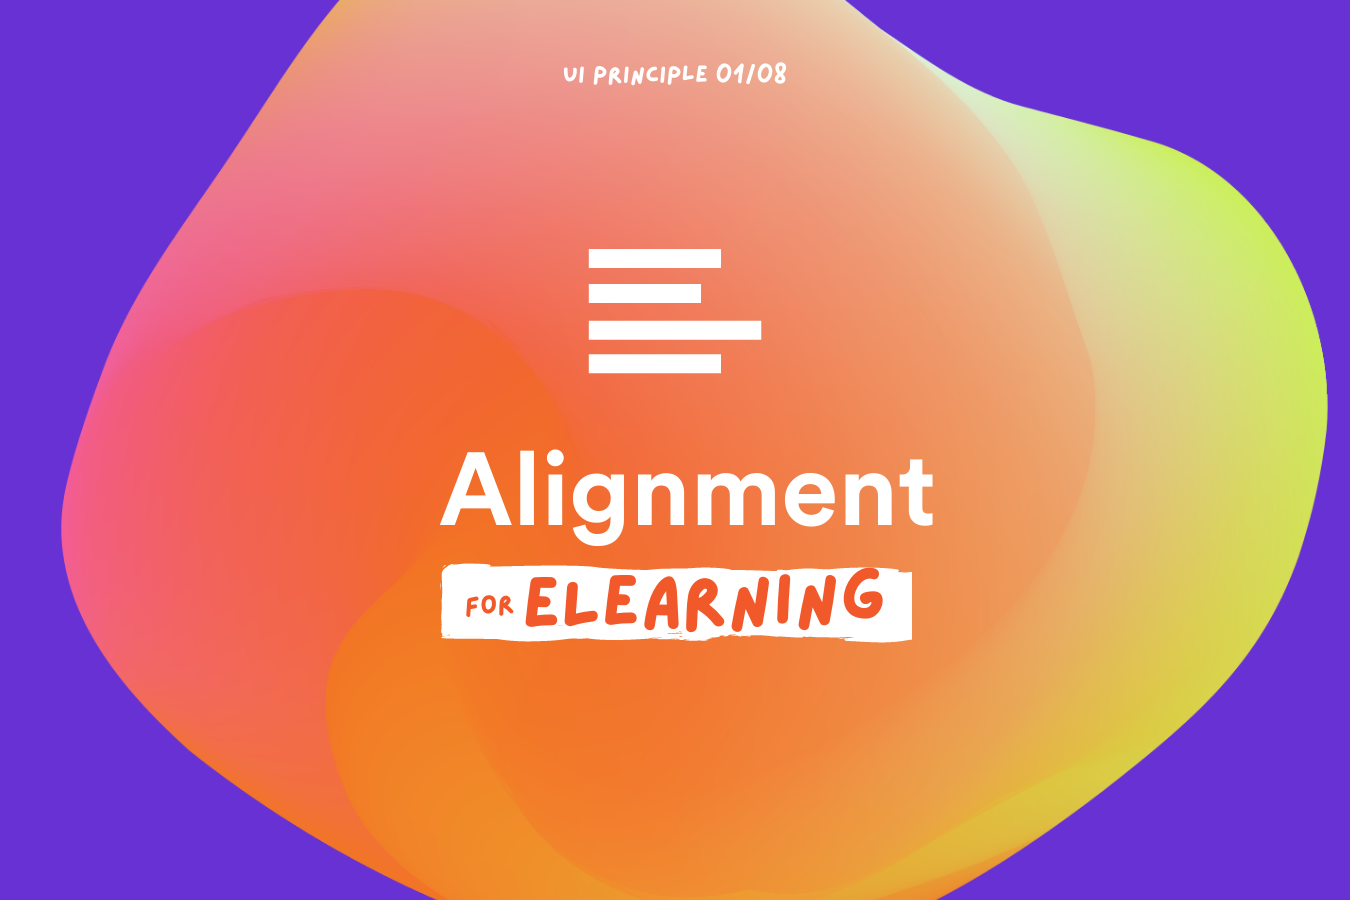 UI Principle for eLearning 1: Alignment